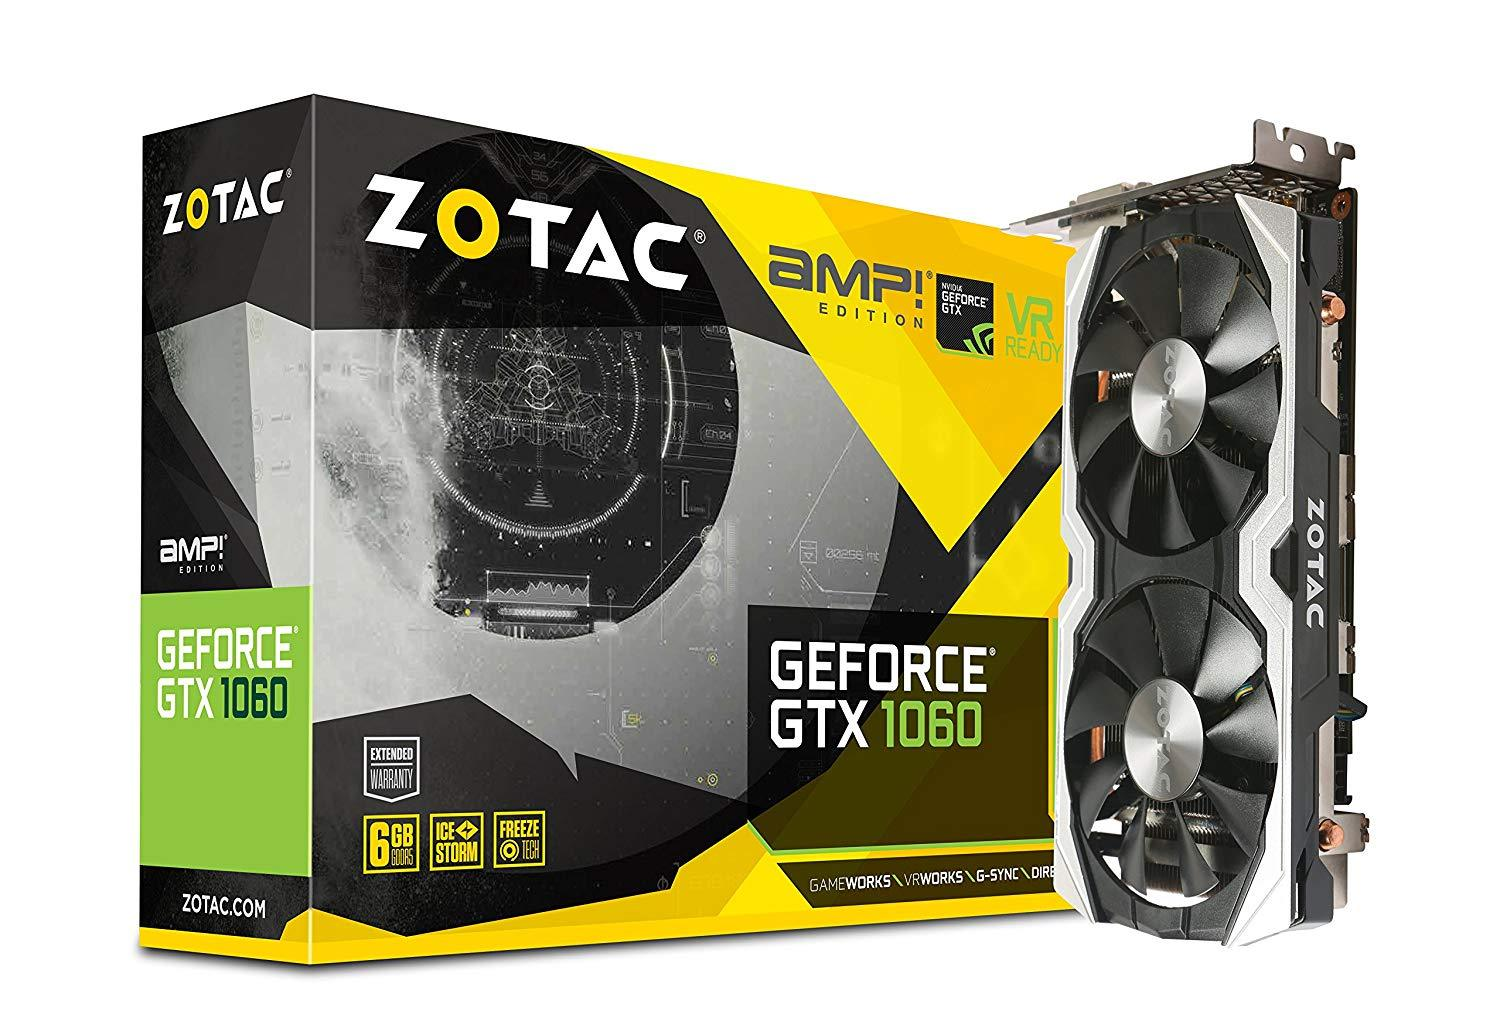 Zotac Gaming GeForce GTX 1060 AMP Edition 6GB GDDR5 PCI-E Gen 3x4 - Graphics Card